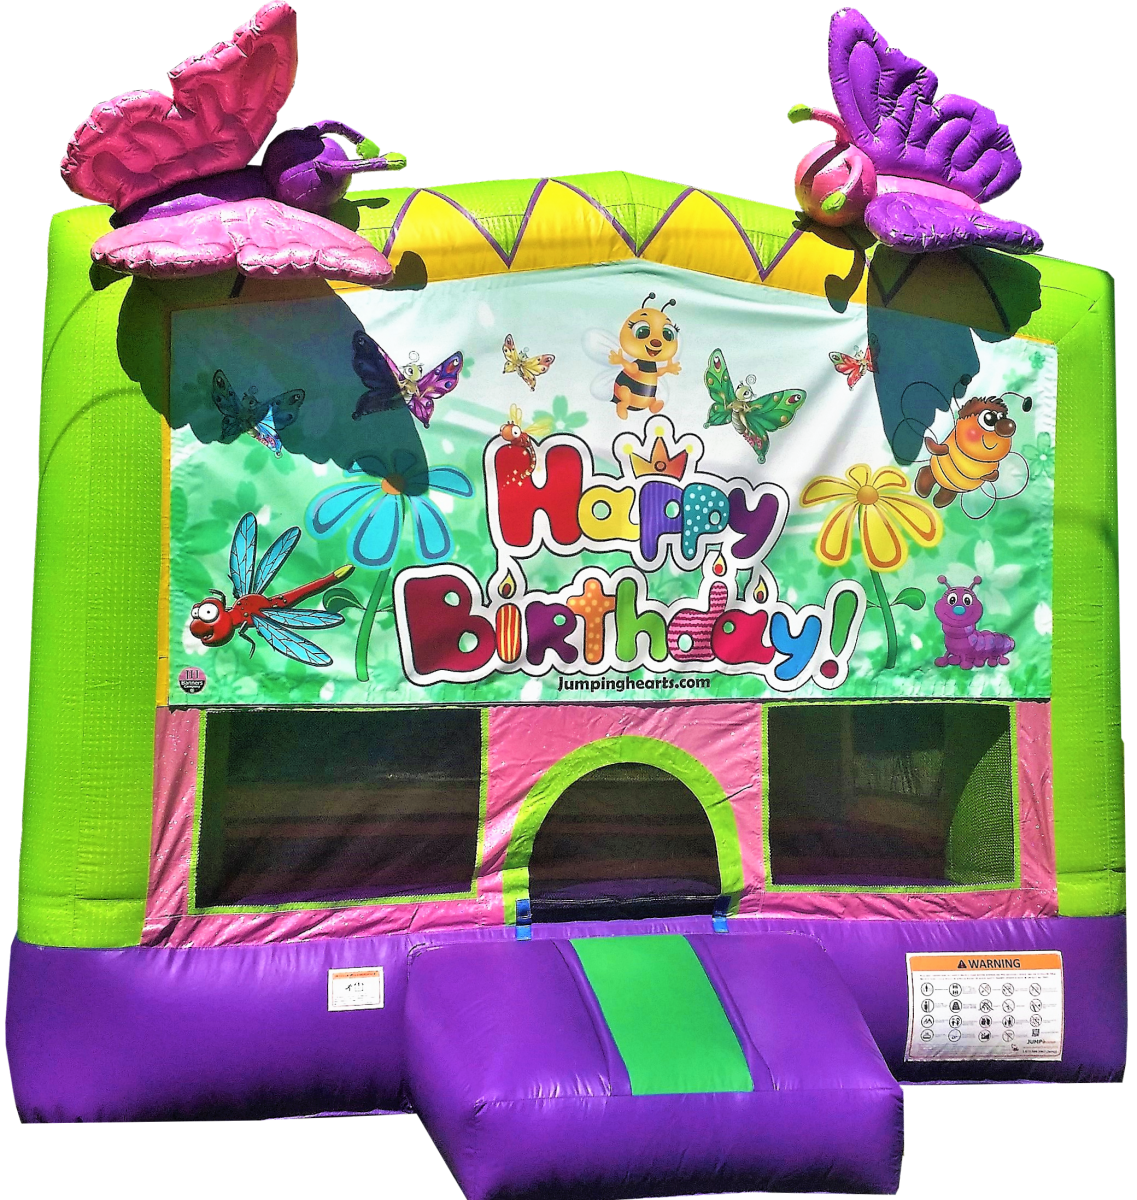 Butterflies bounce house little girl bounce house rental Nashville TN Jumping Hearts Party Rentals